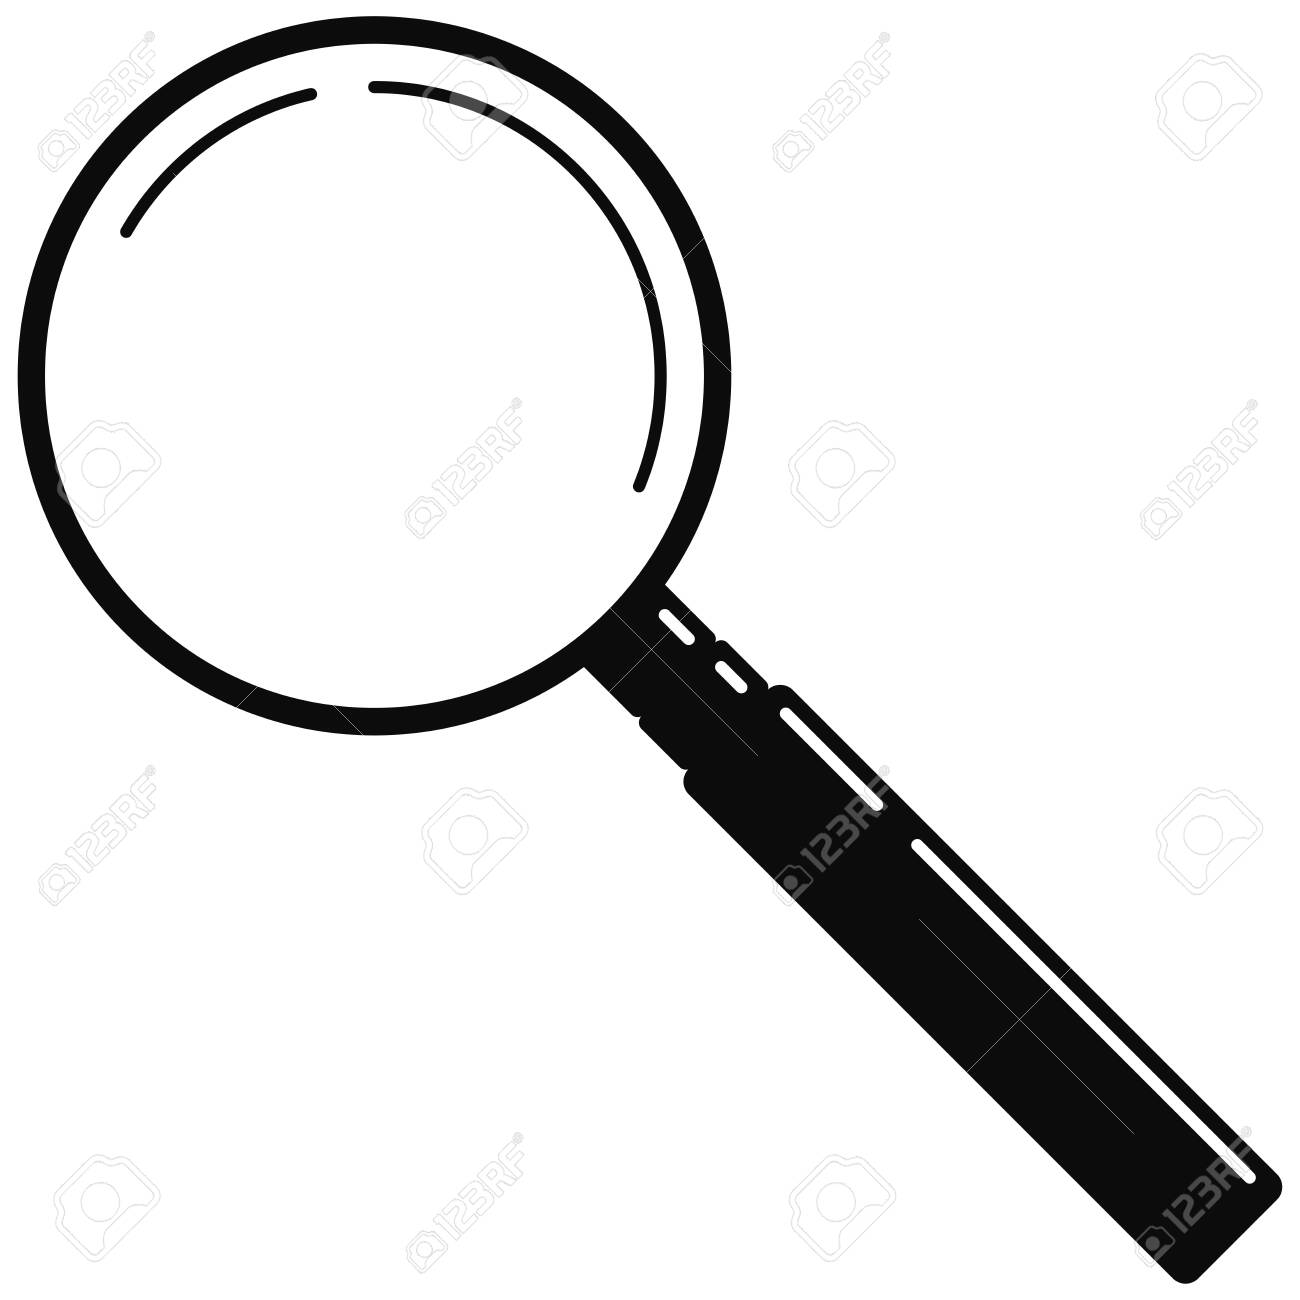 Black metal magnifying glass web icon isolated on white background. Simple search loupe with black handle. Business investigation illustration. Vector modern design magnifying glass logo for zoom tool - 140796148